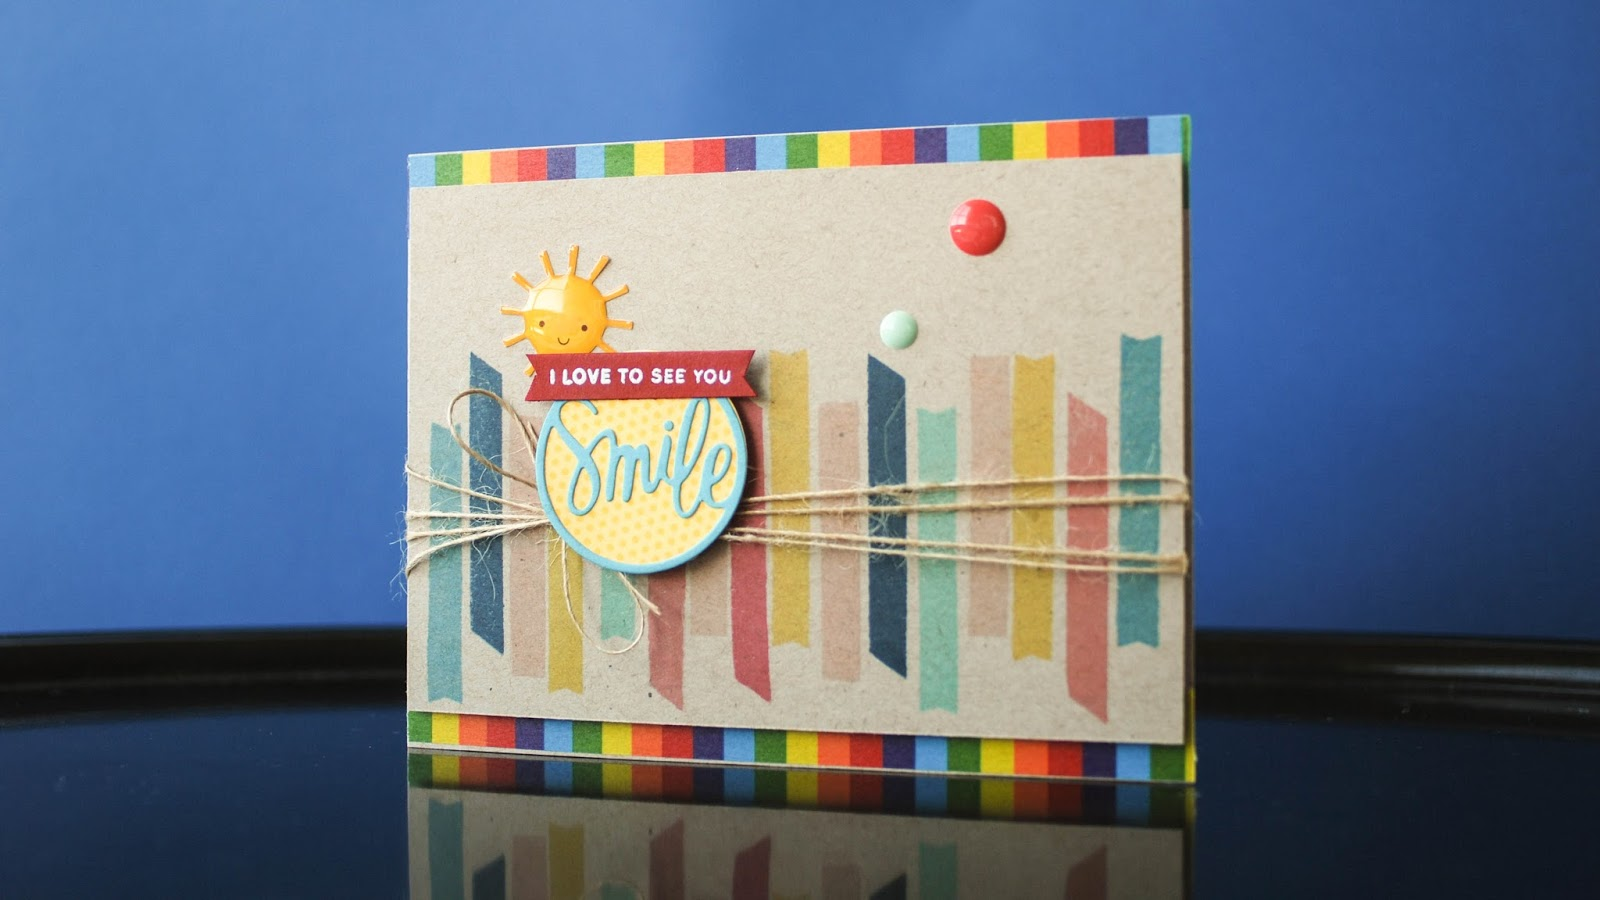 simon says stamp card kit june 2015 -stamping on kraft paper using dye inks